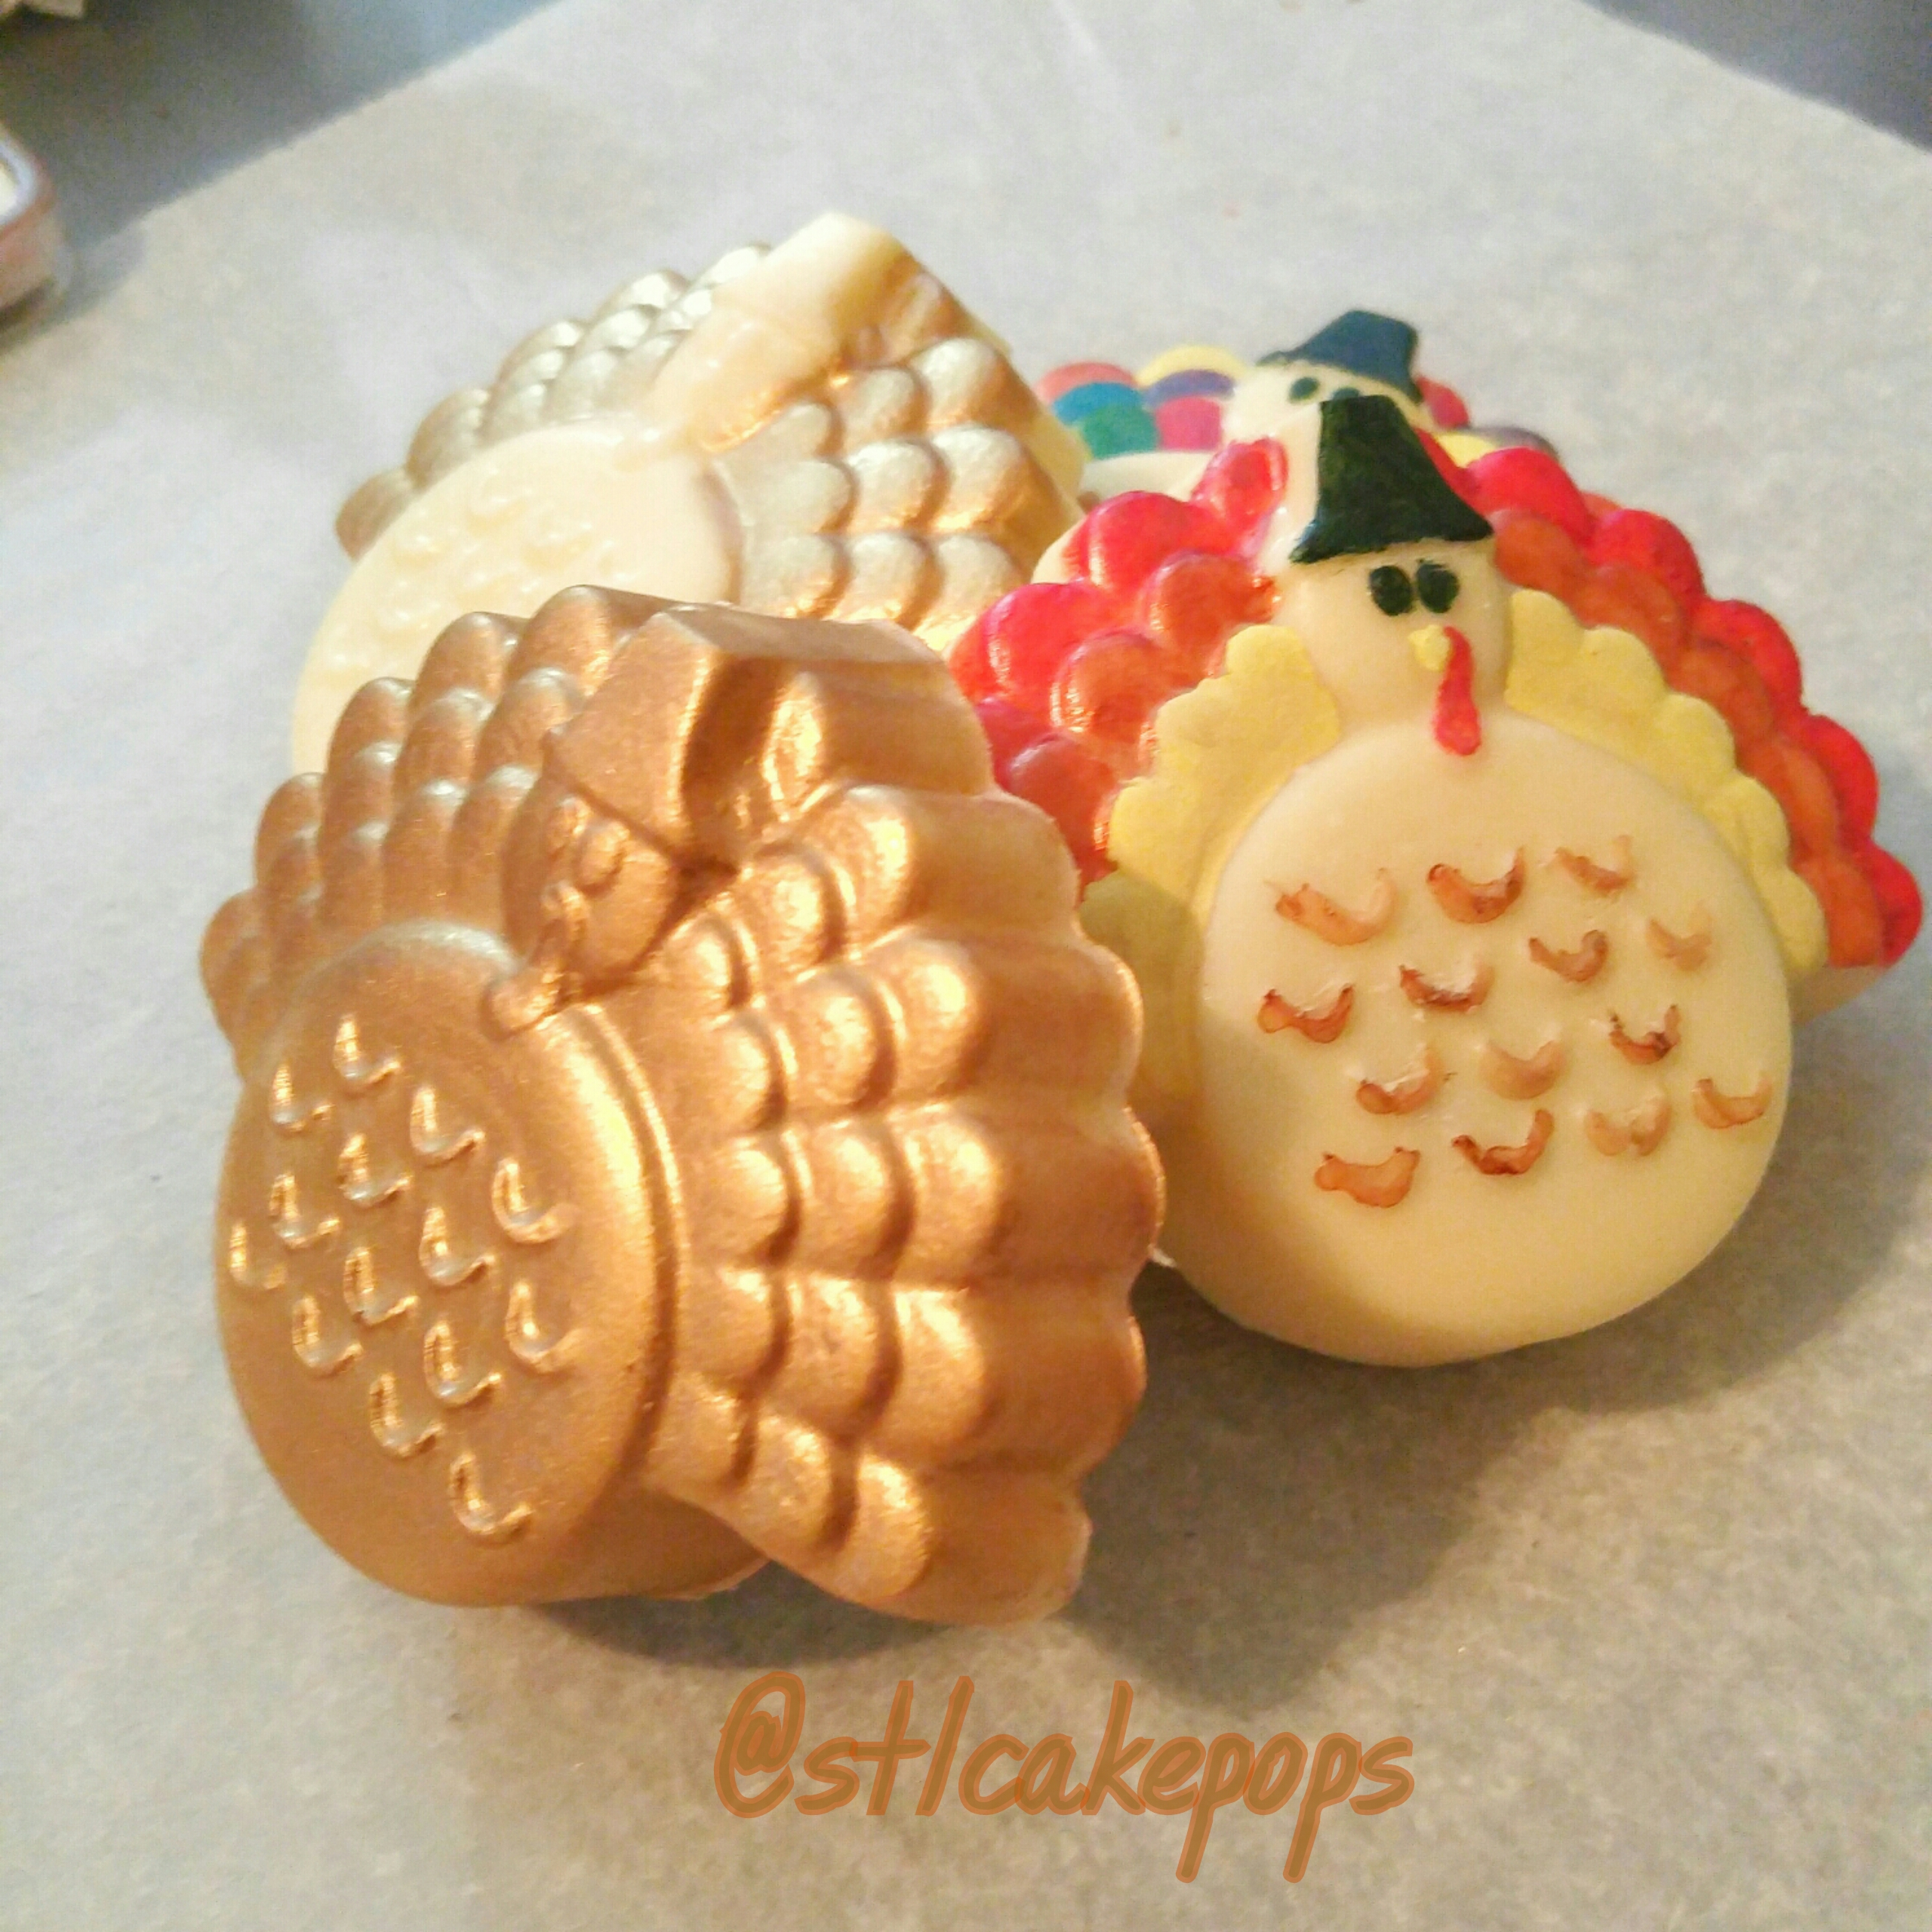 Colored chocolate covered oreos in turkey shape